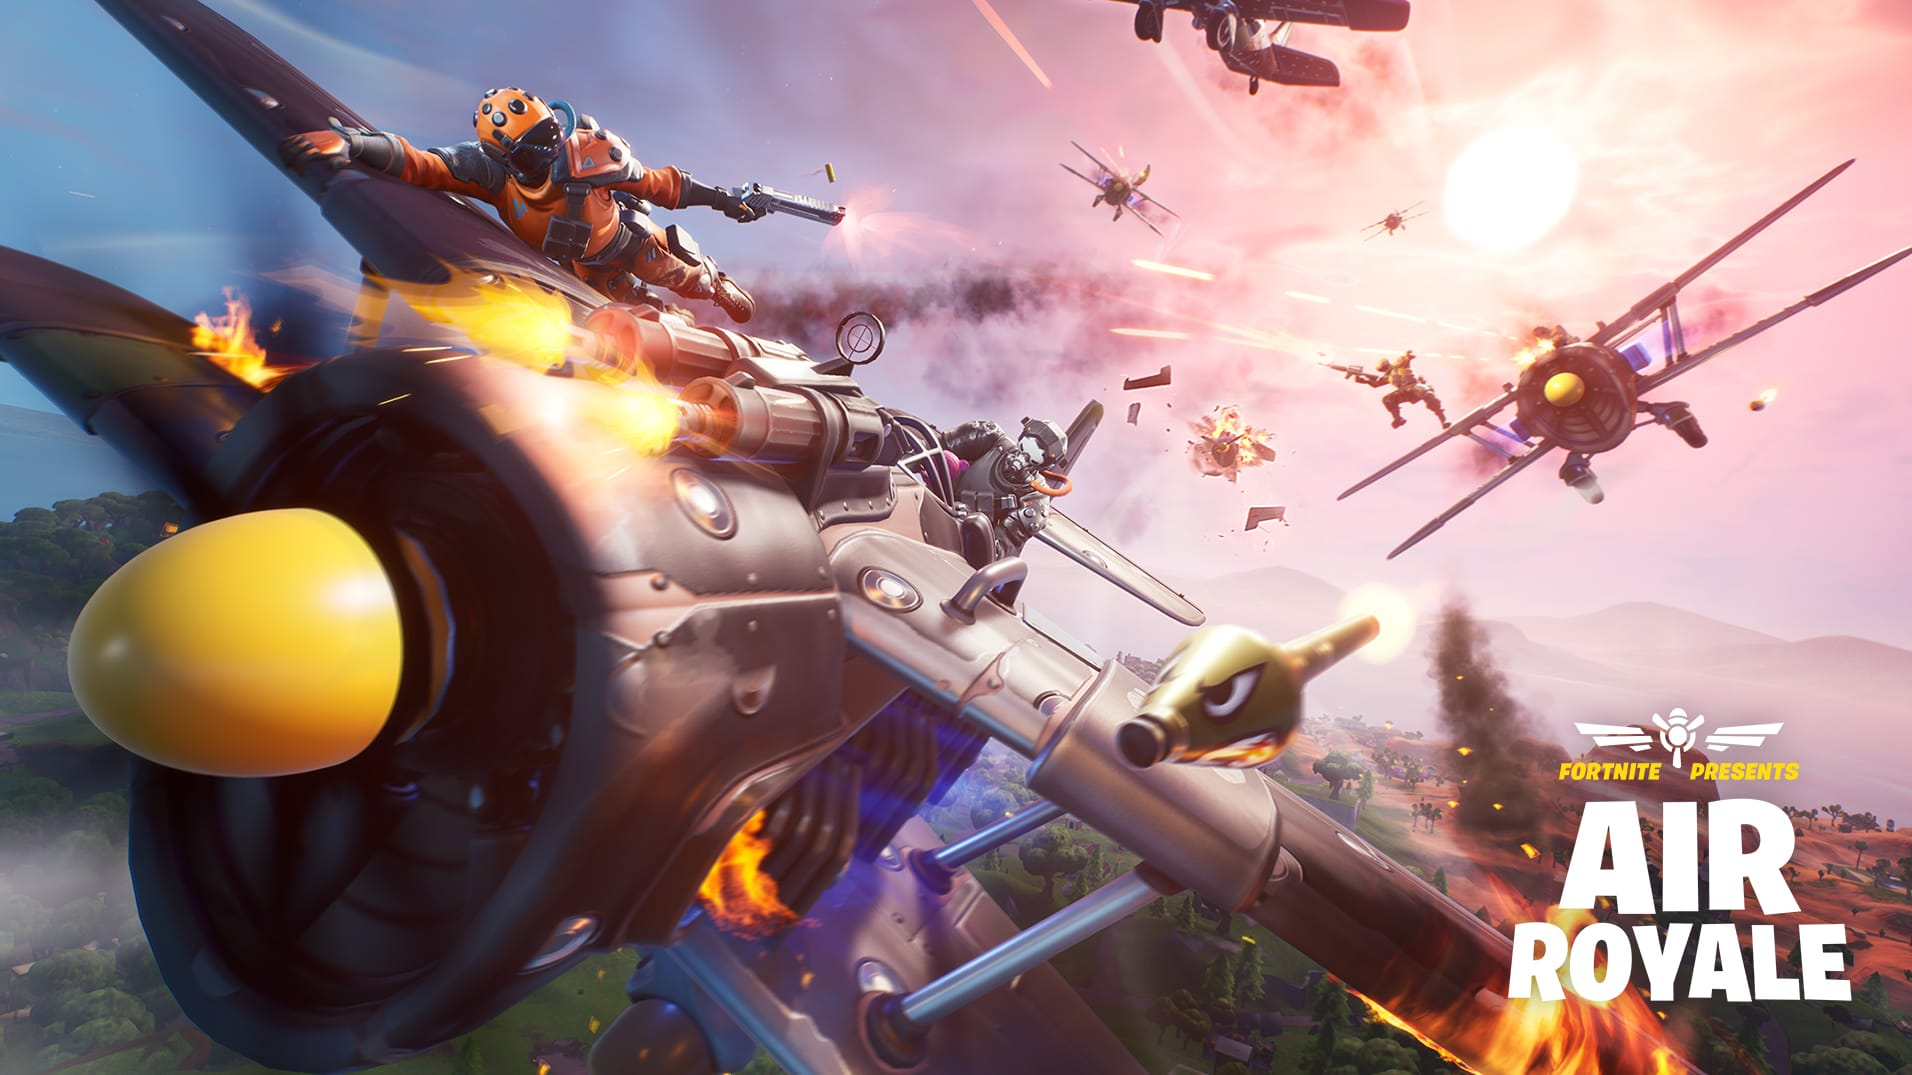 Fortnite Air Royale Limited Time Mode Added in Patch 8.40